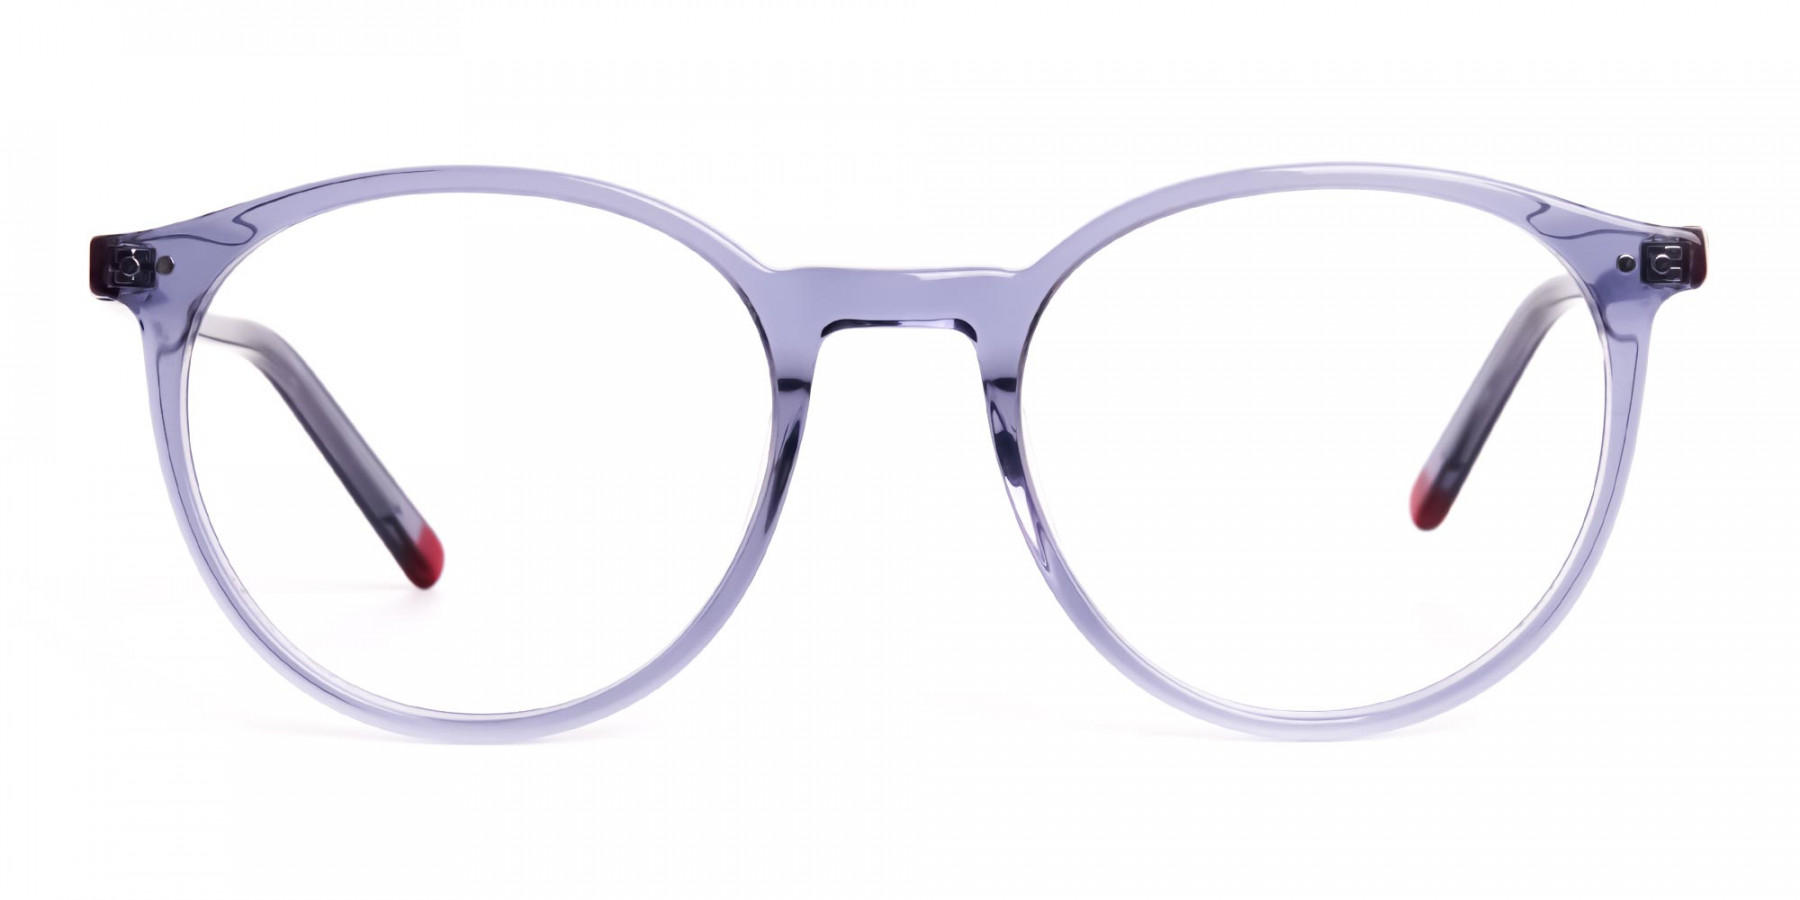 crystal-clear-and-transparent-grey-round-glasses-1